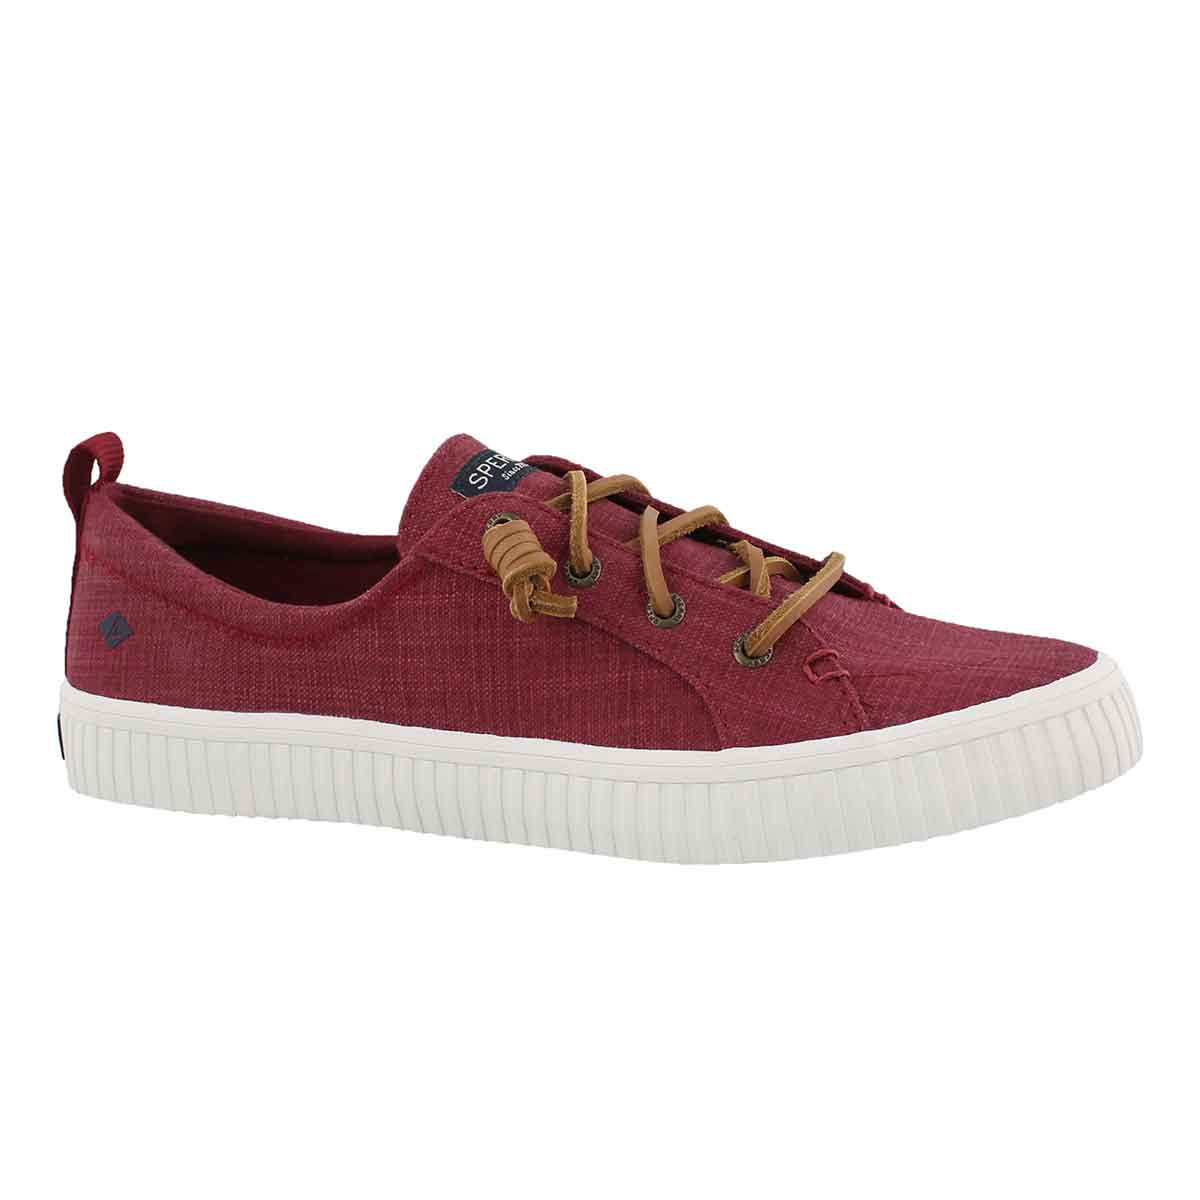 Women's CREST VIBE CREEPER rosewood sneakers